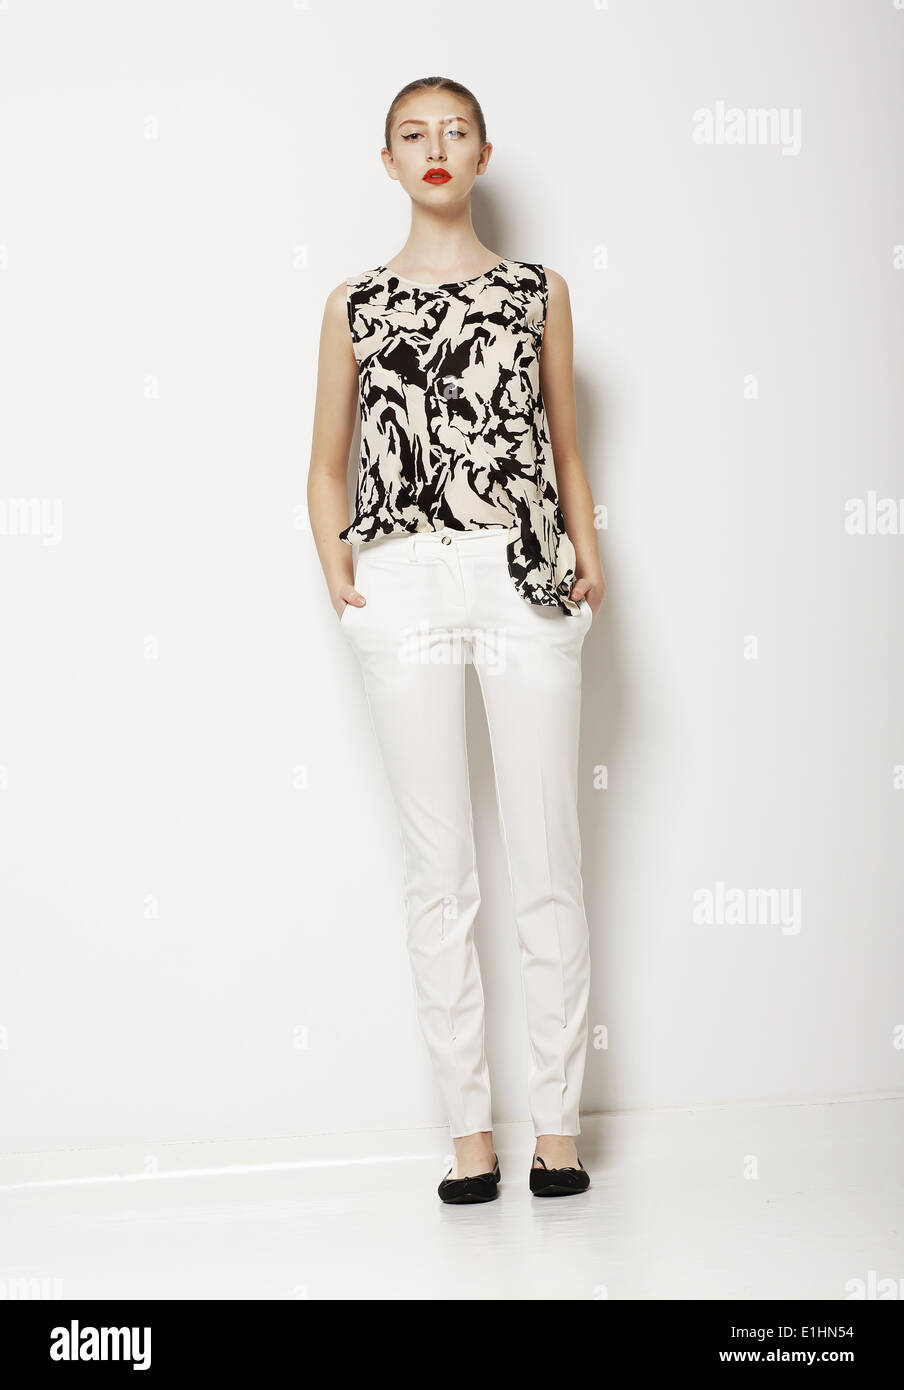 b5402b3b22bf Stylish Young Woman Mod in Light Clothes over White Background. Fashion  Style